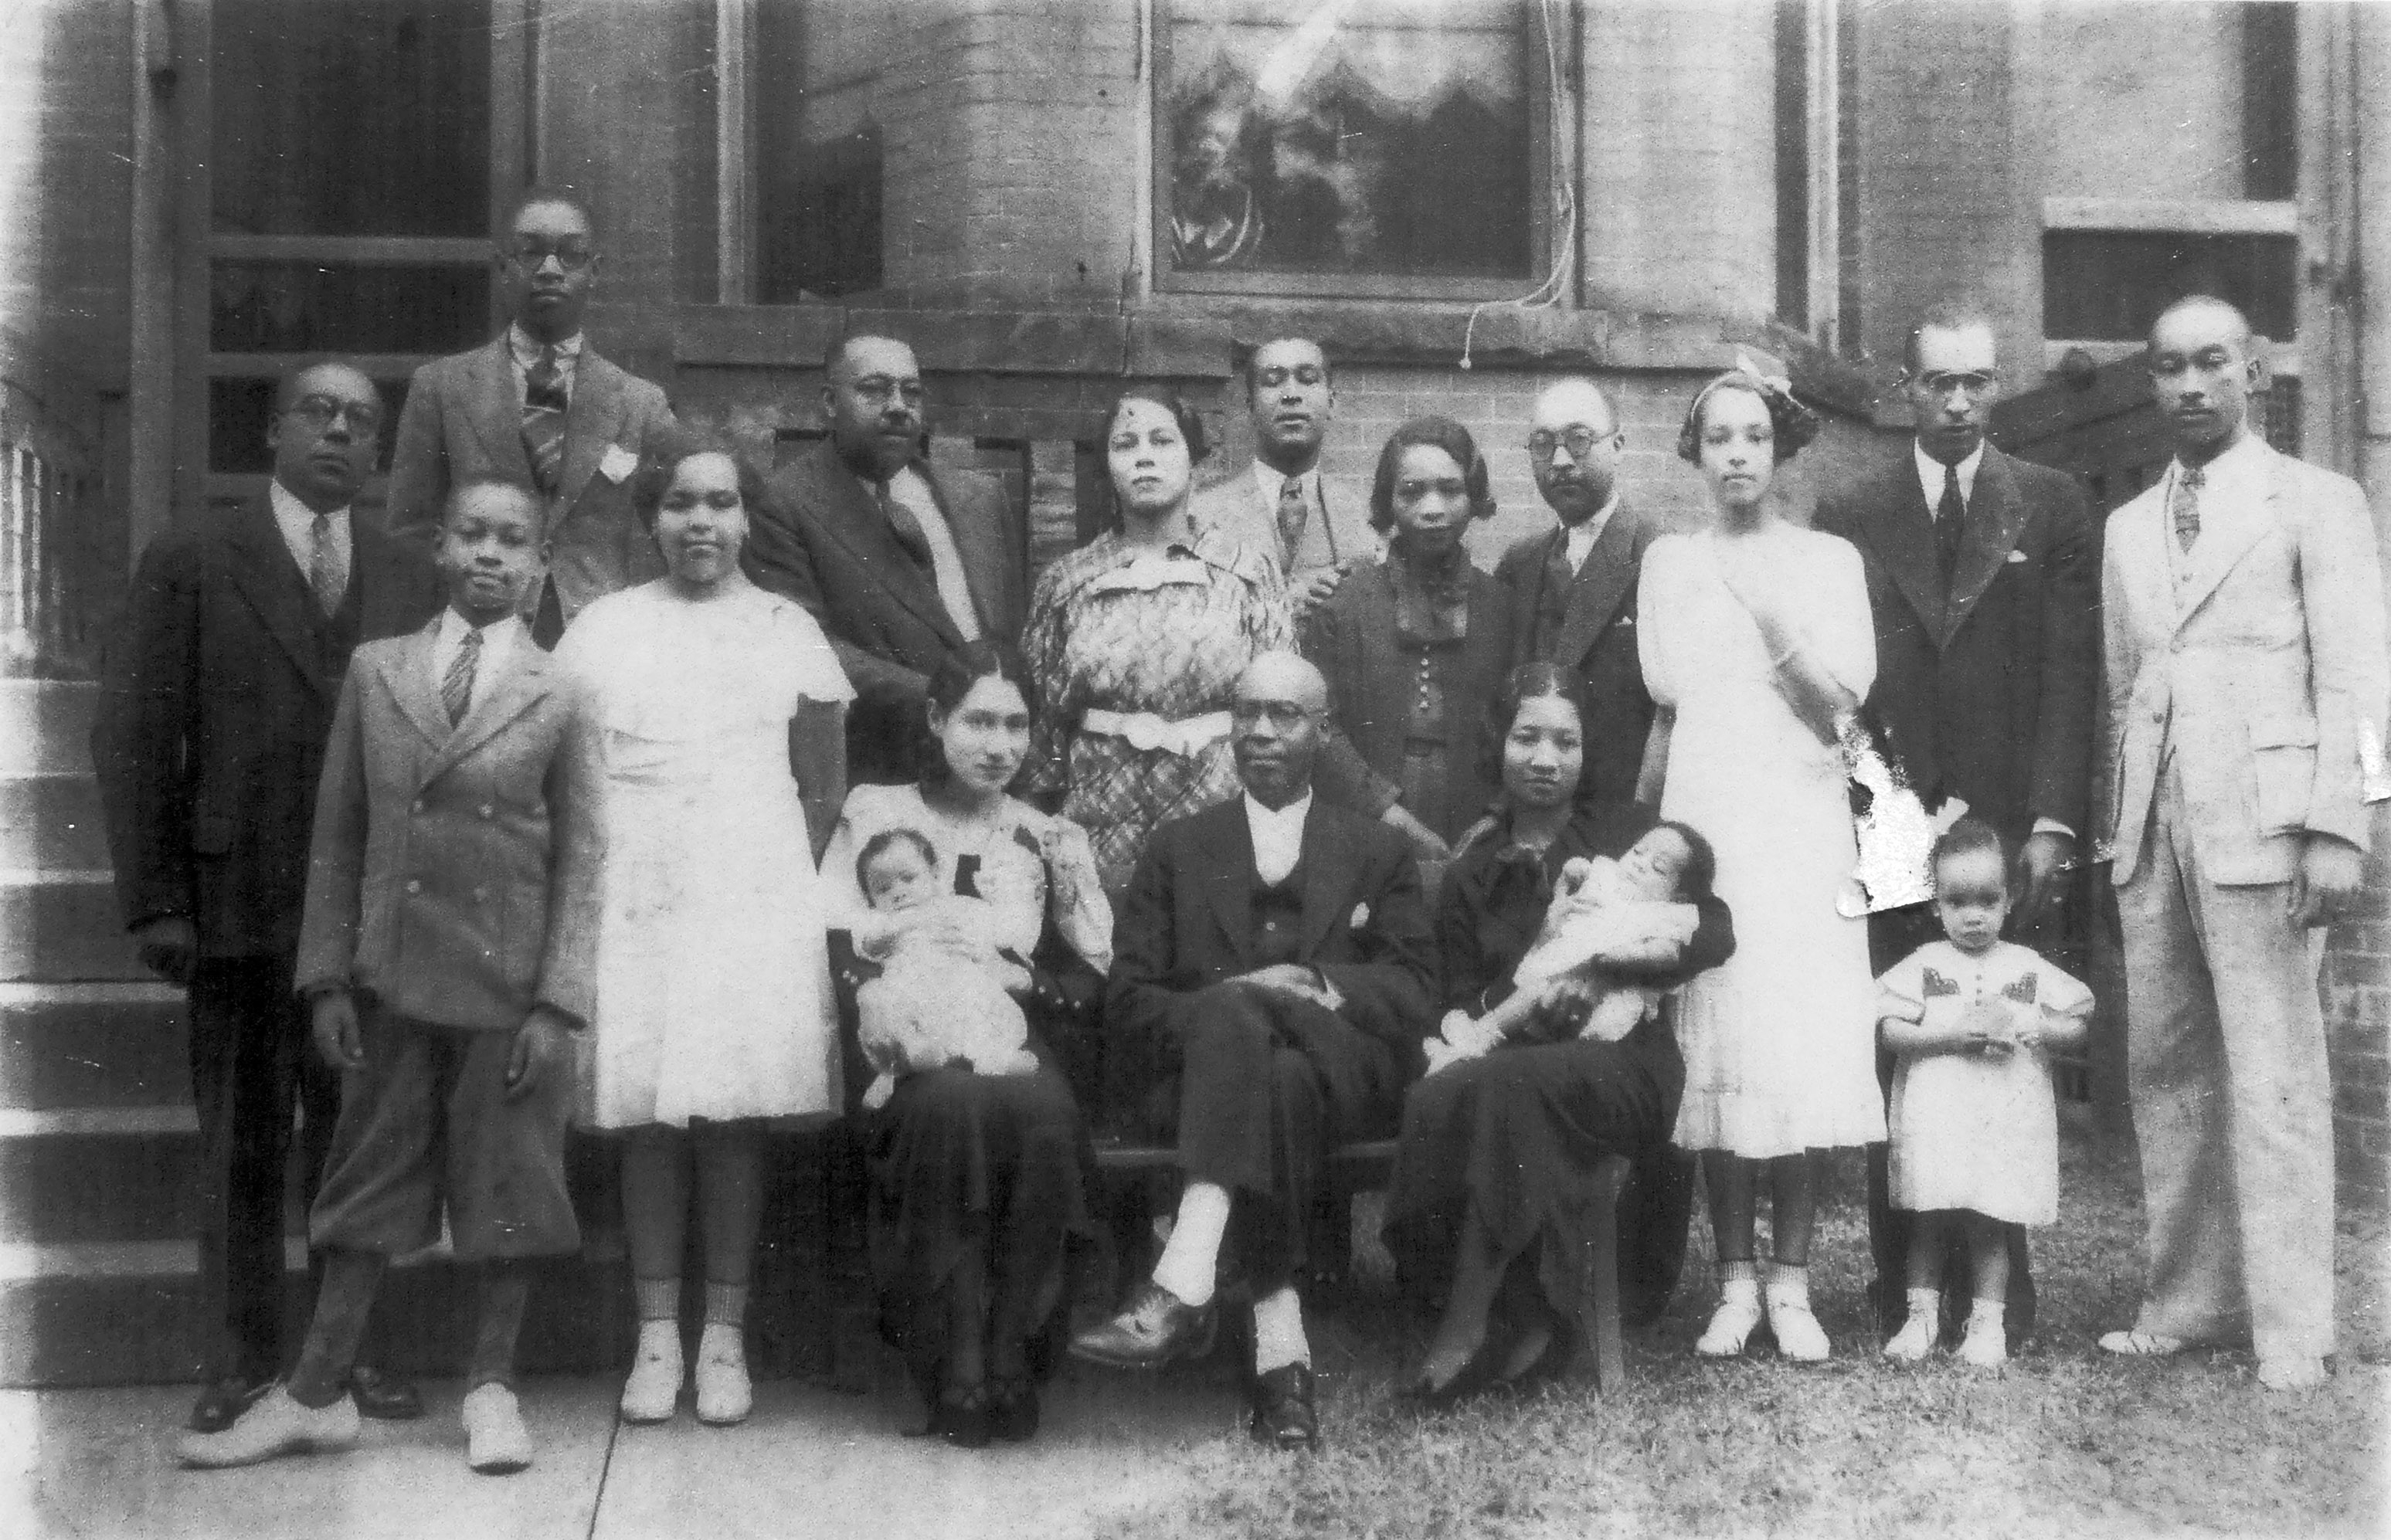 Rev. William A. Taylor & Family